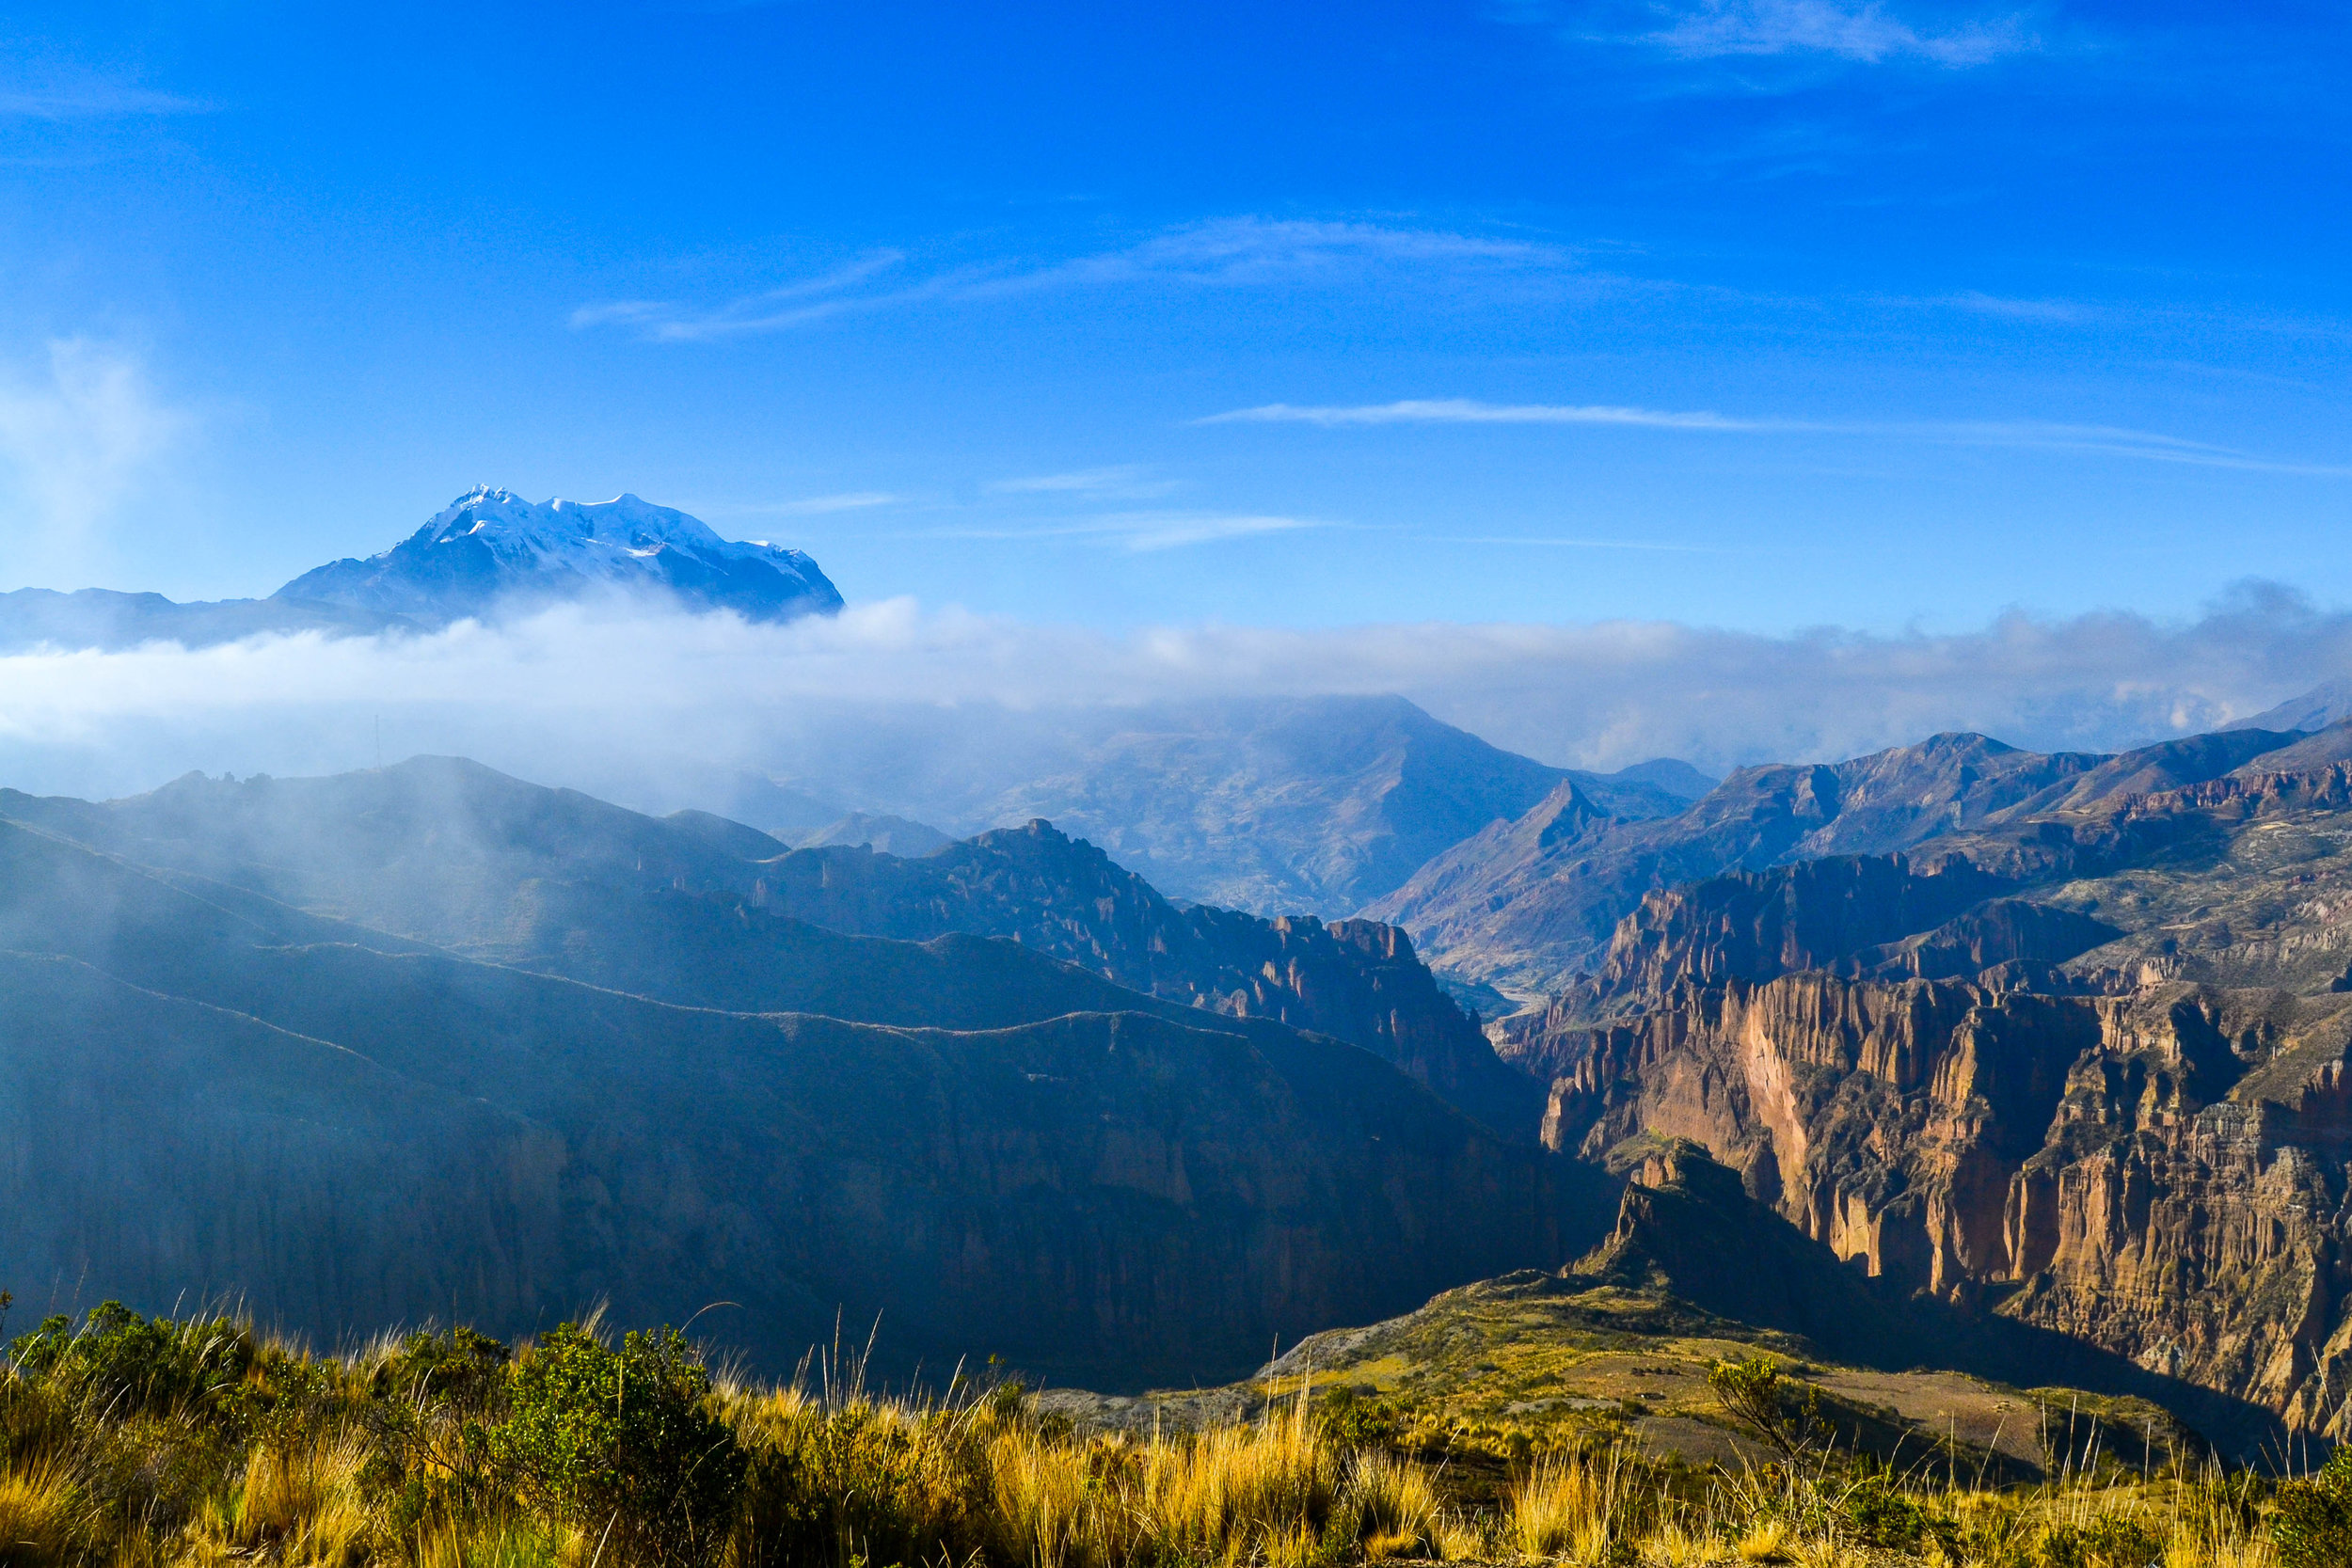 View of Palca Canyon in Bolivia